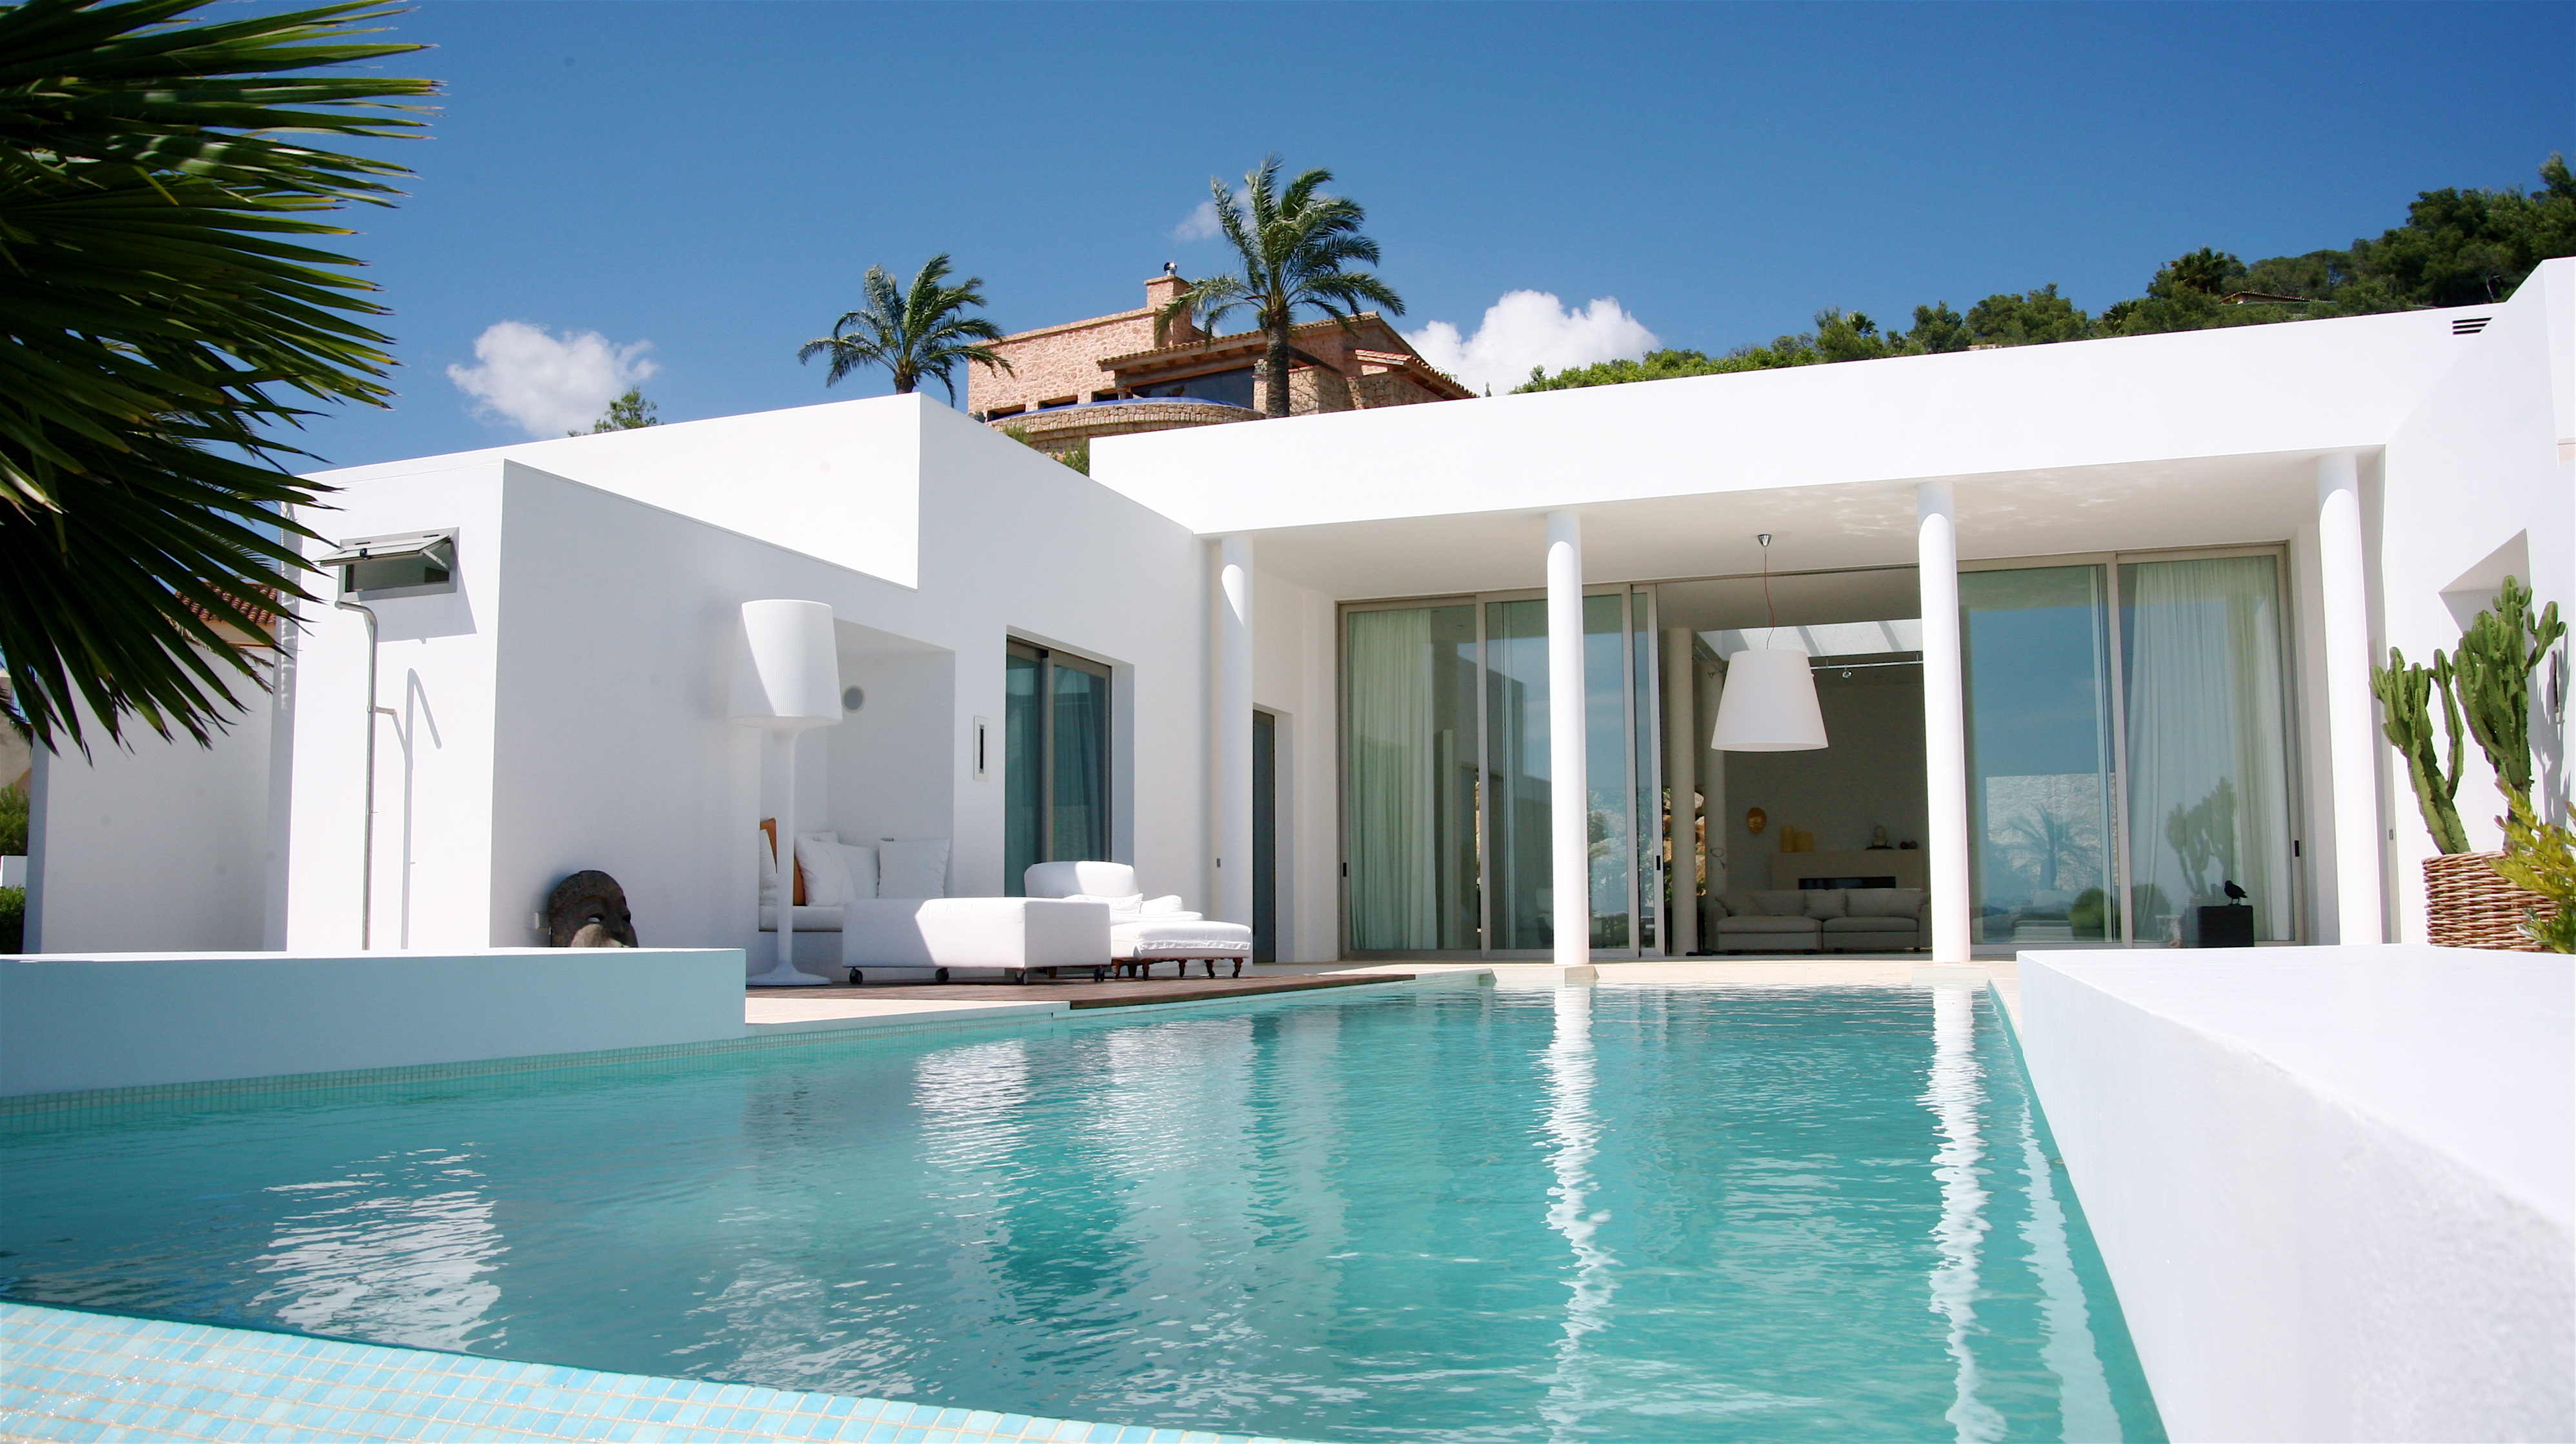 Ibiza luxury house for sale overlooking Dalt Vila Formentera and Ibiza town with sea views